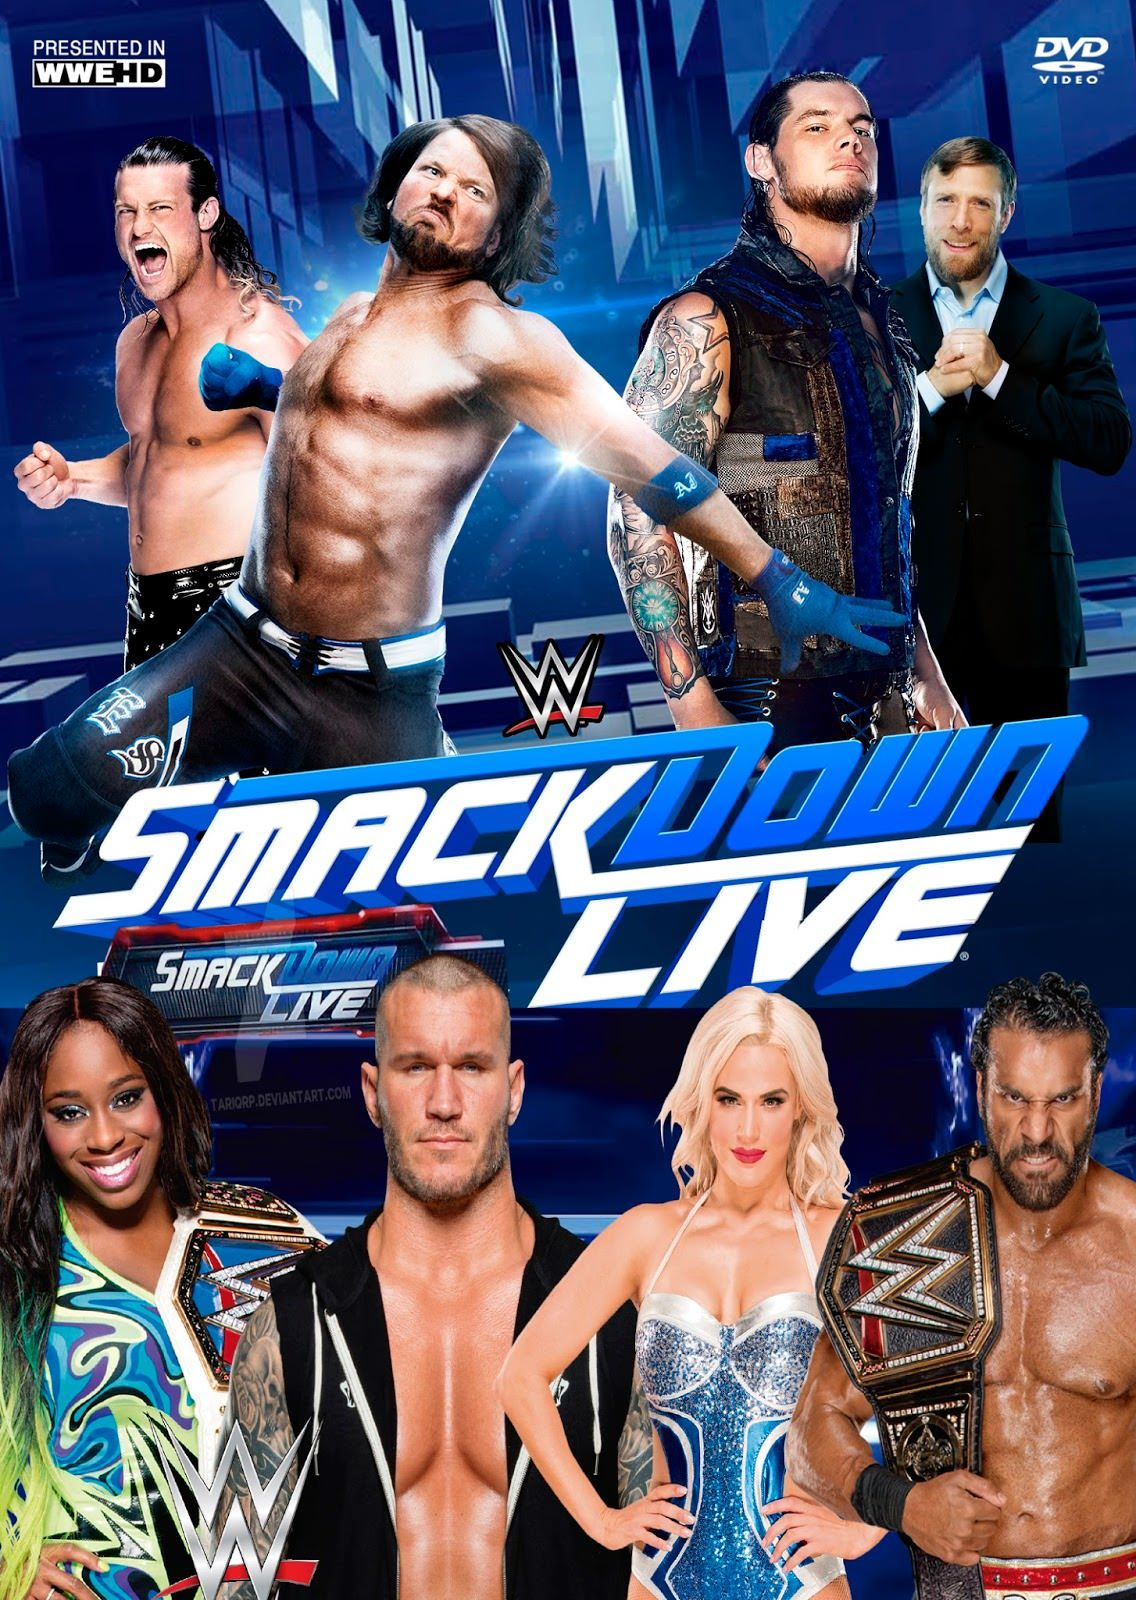 WWE Smackdown Live 11 June 2019